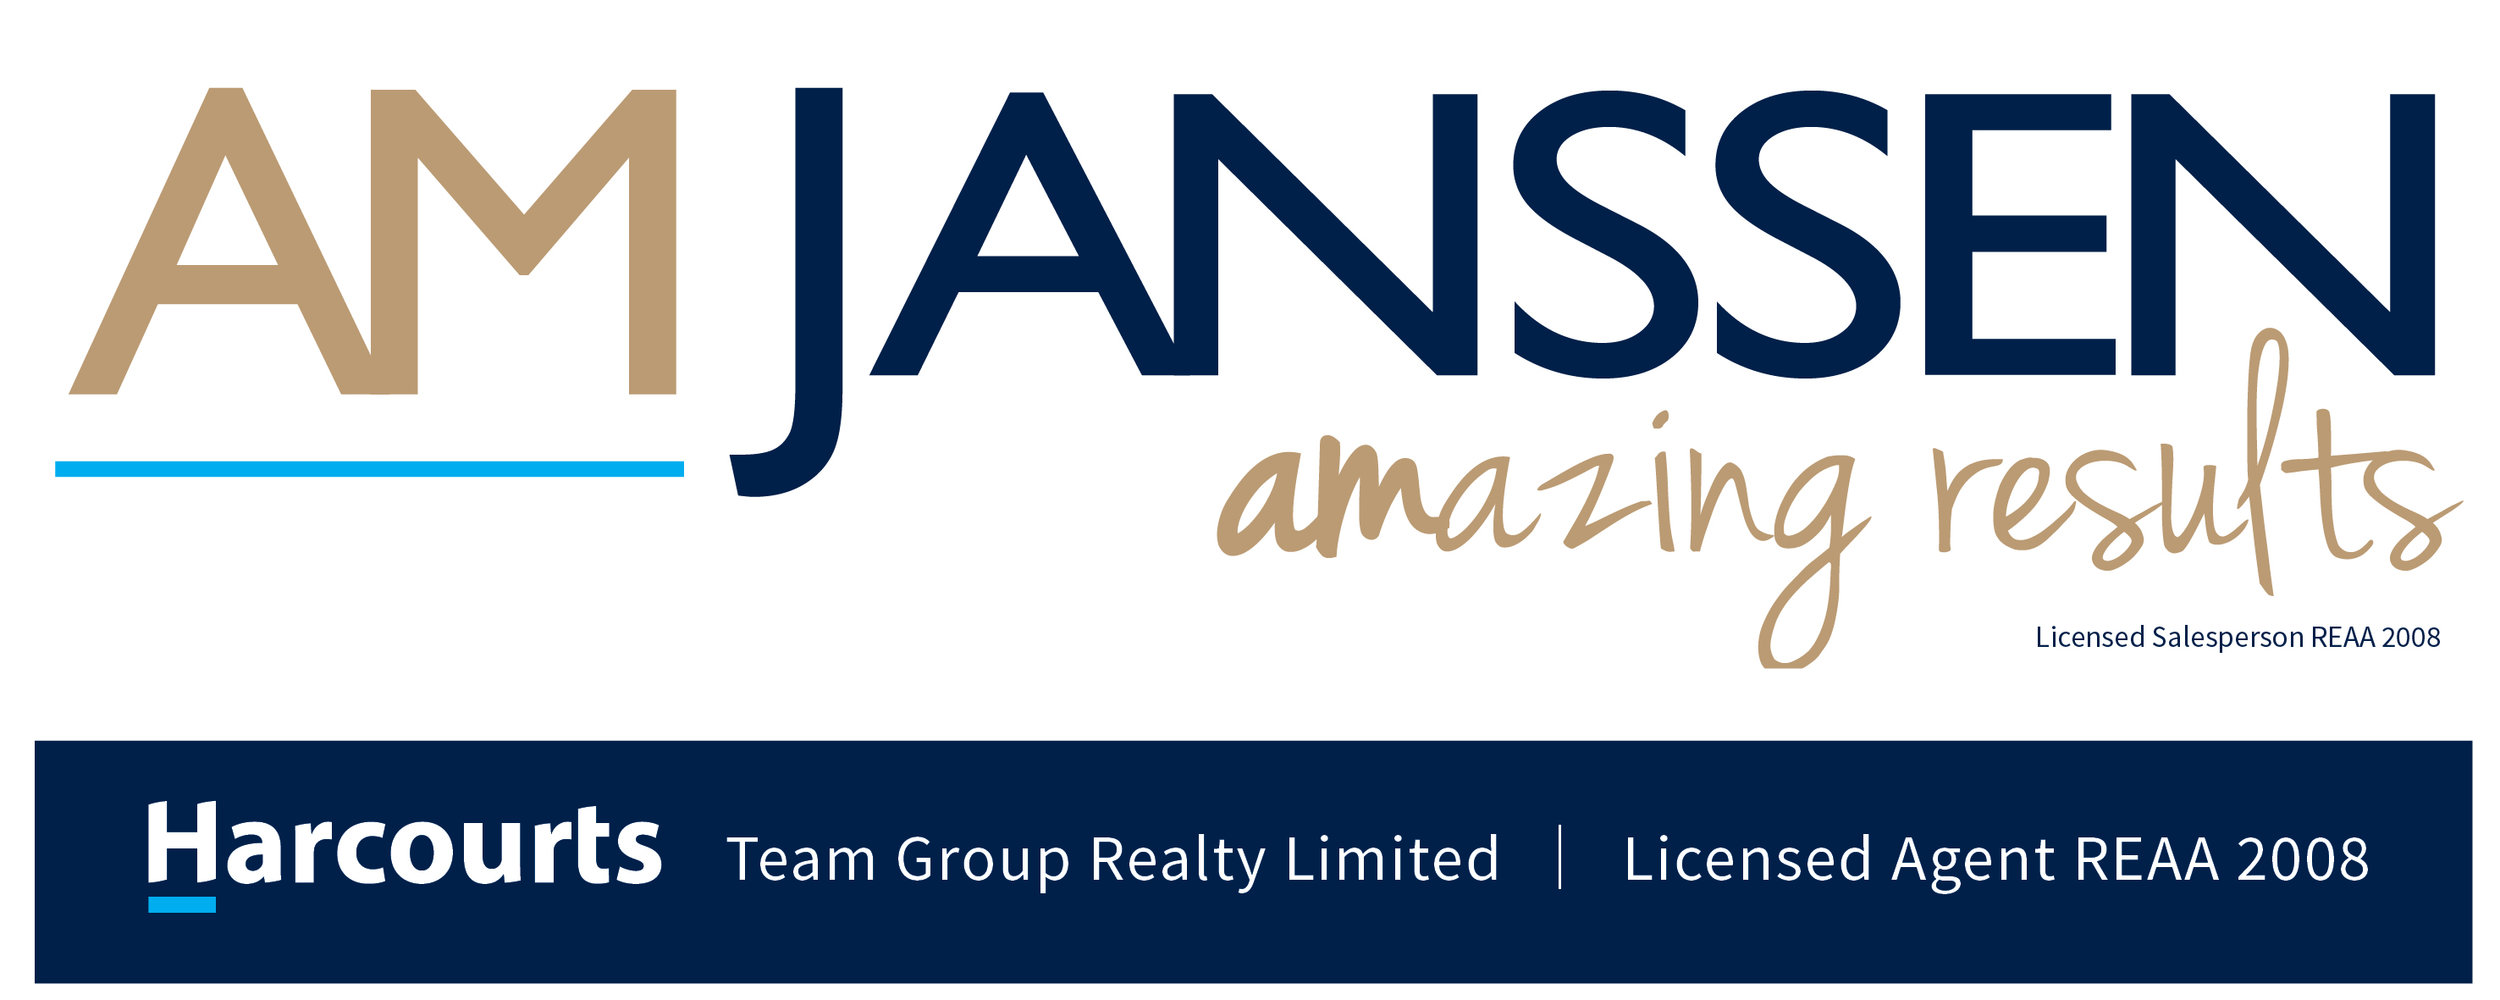 Platinum Sponsor.AM is helping out as a platinum sponsor, with signage, a spot prize, and volunteering on the day! - Contact her on 021 461 131 or 233 2809annemariejanssen.harcourts.co.nzFor amazing results!